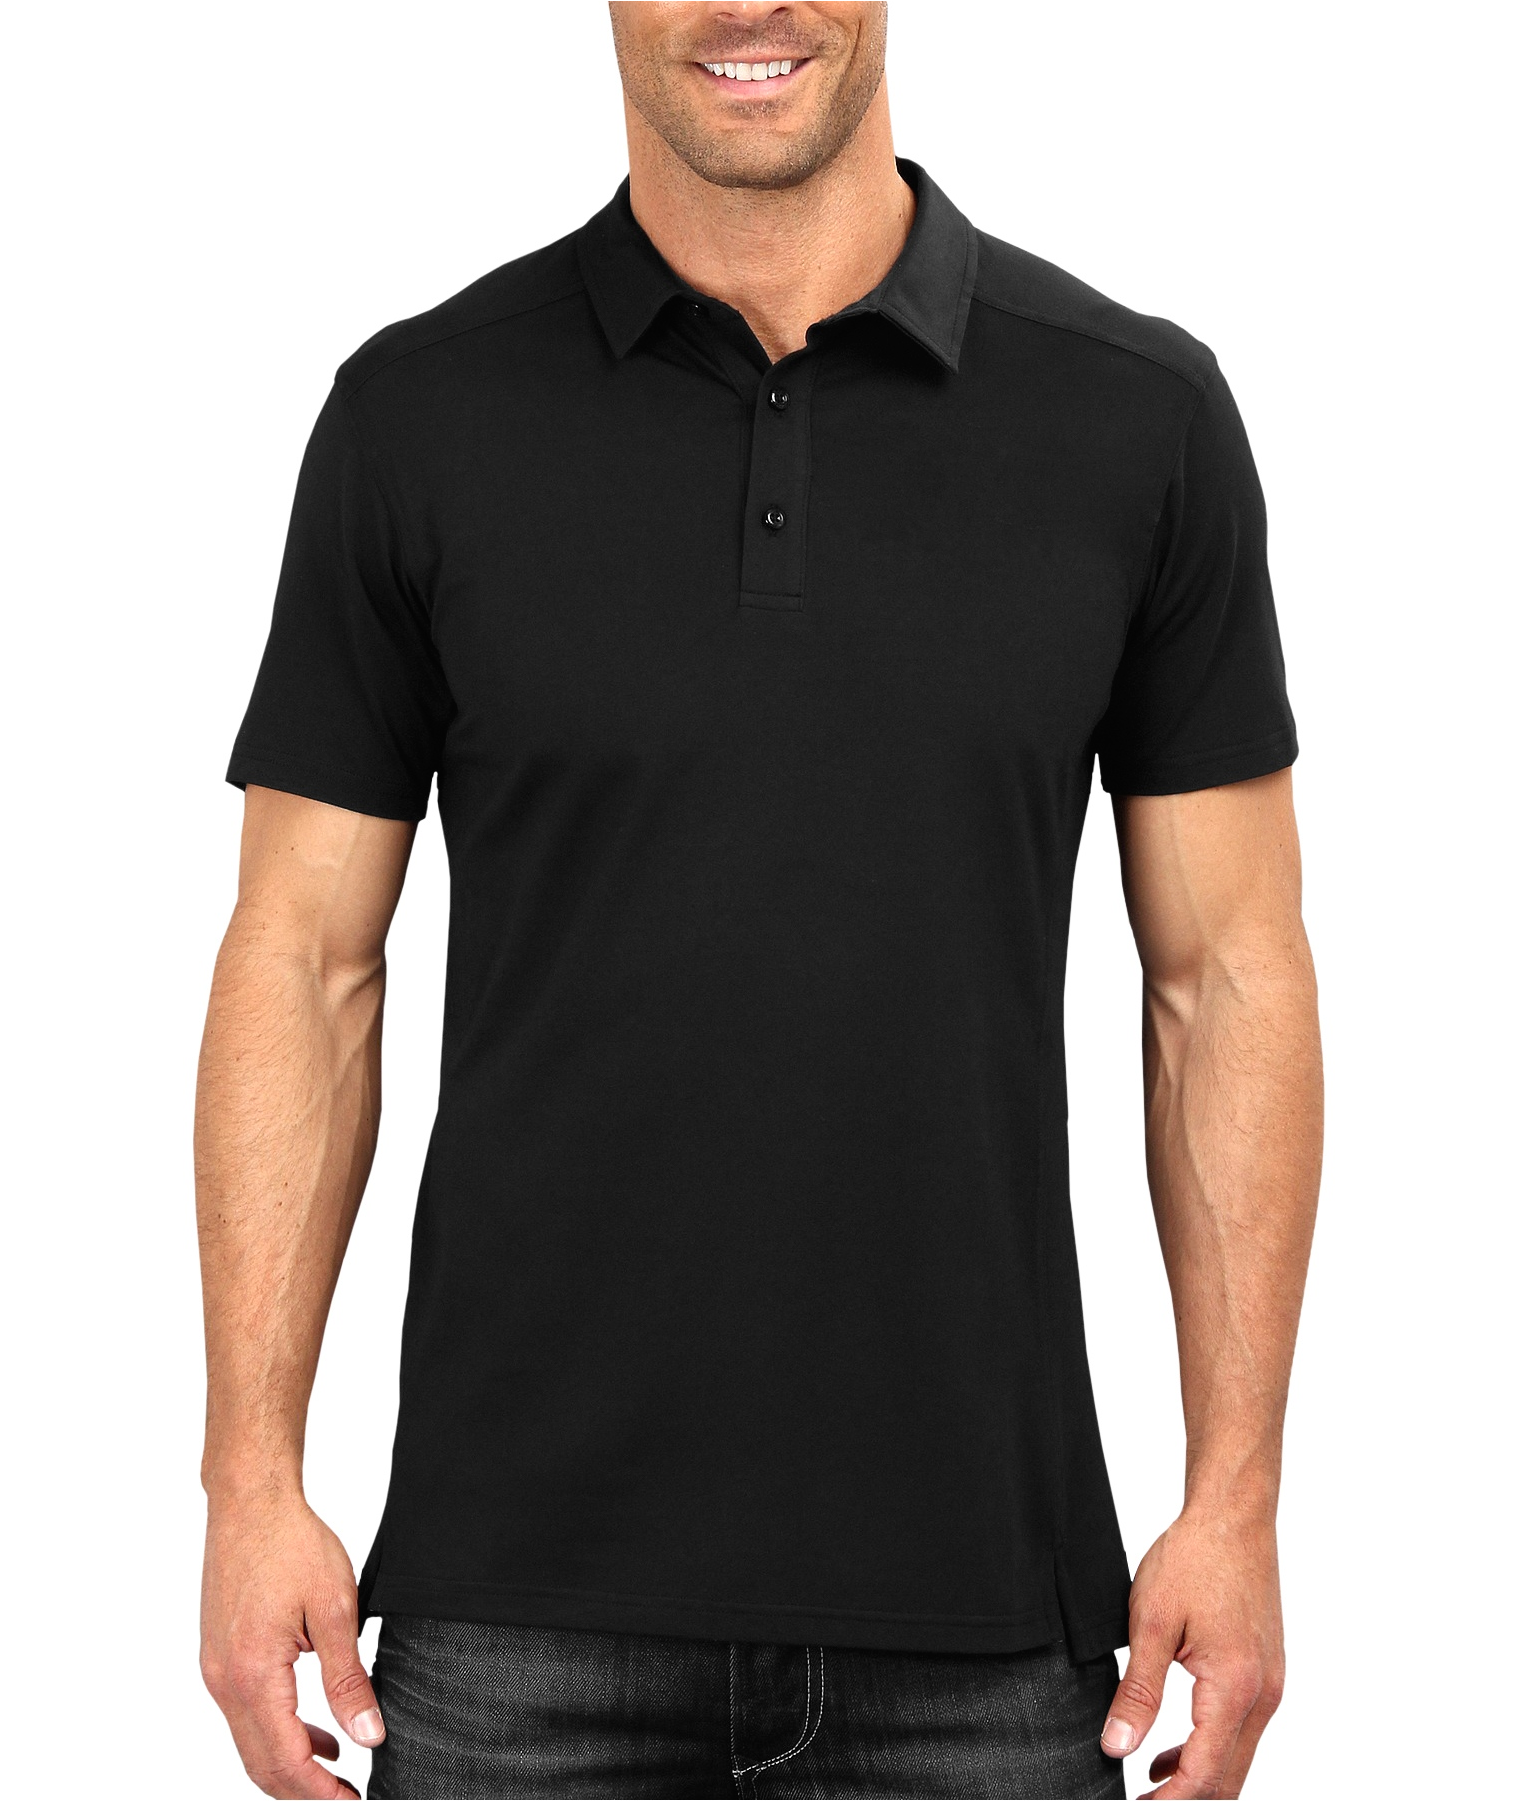 Download Black Polo Shirt Png.